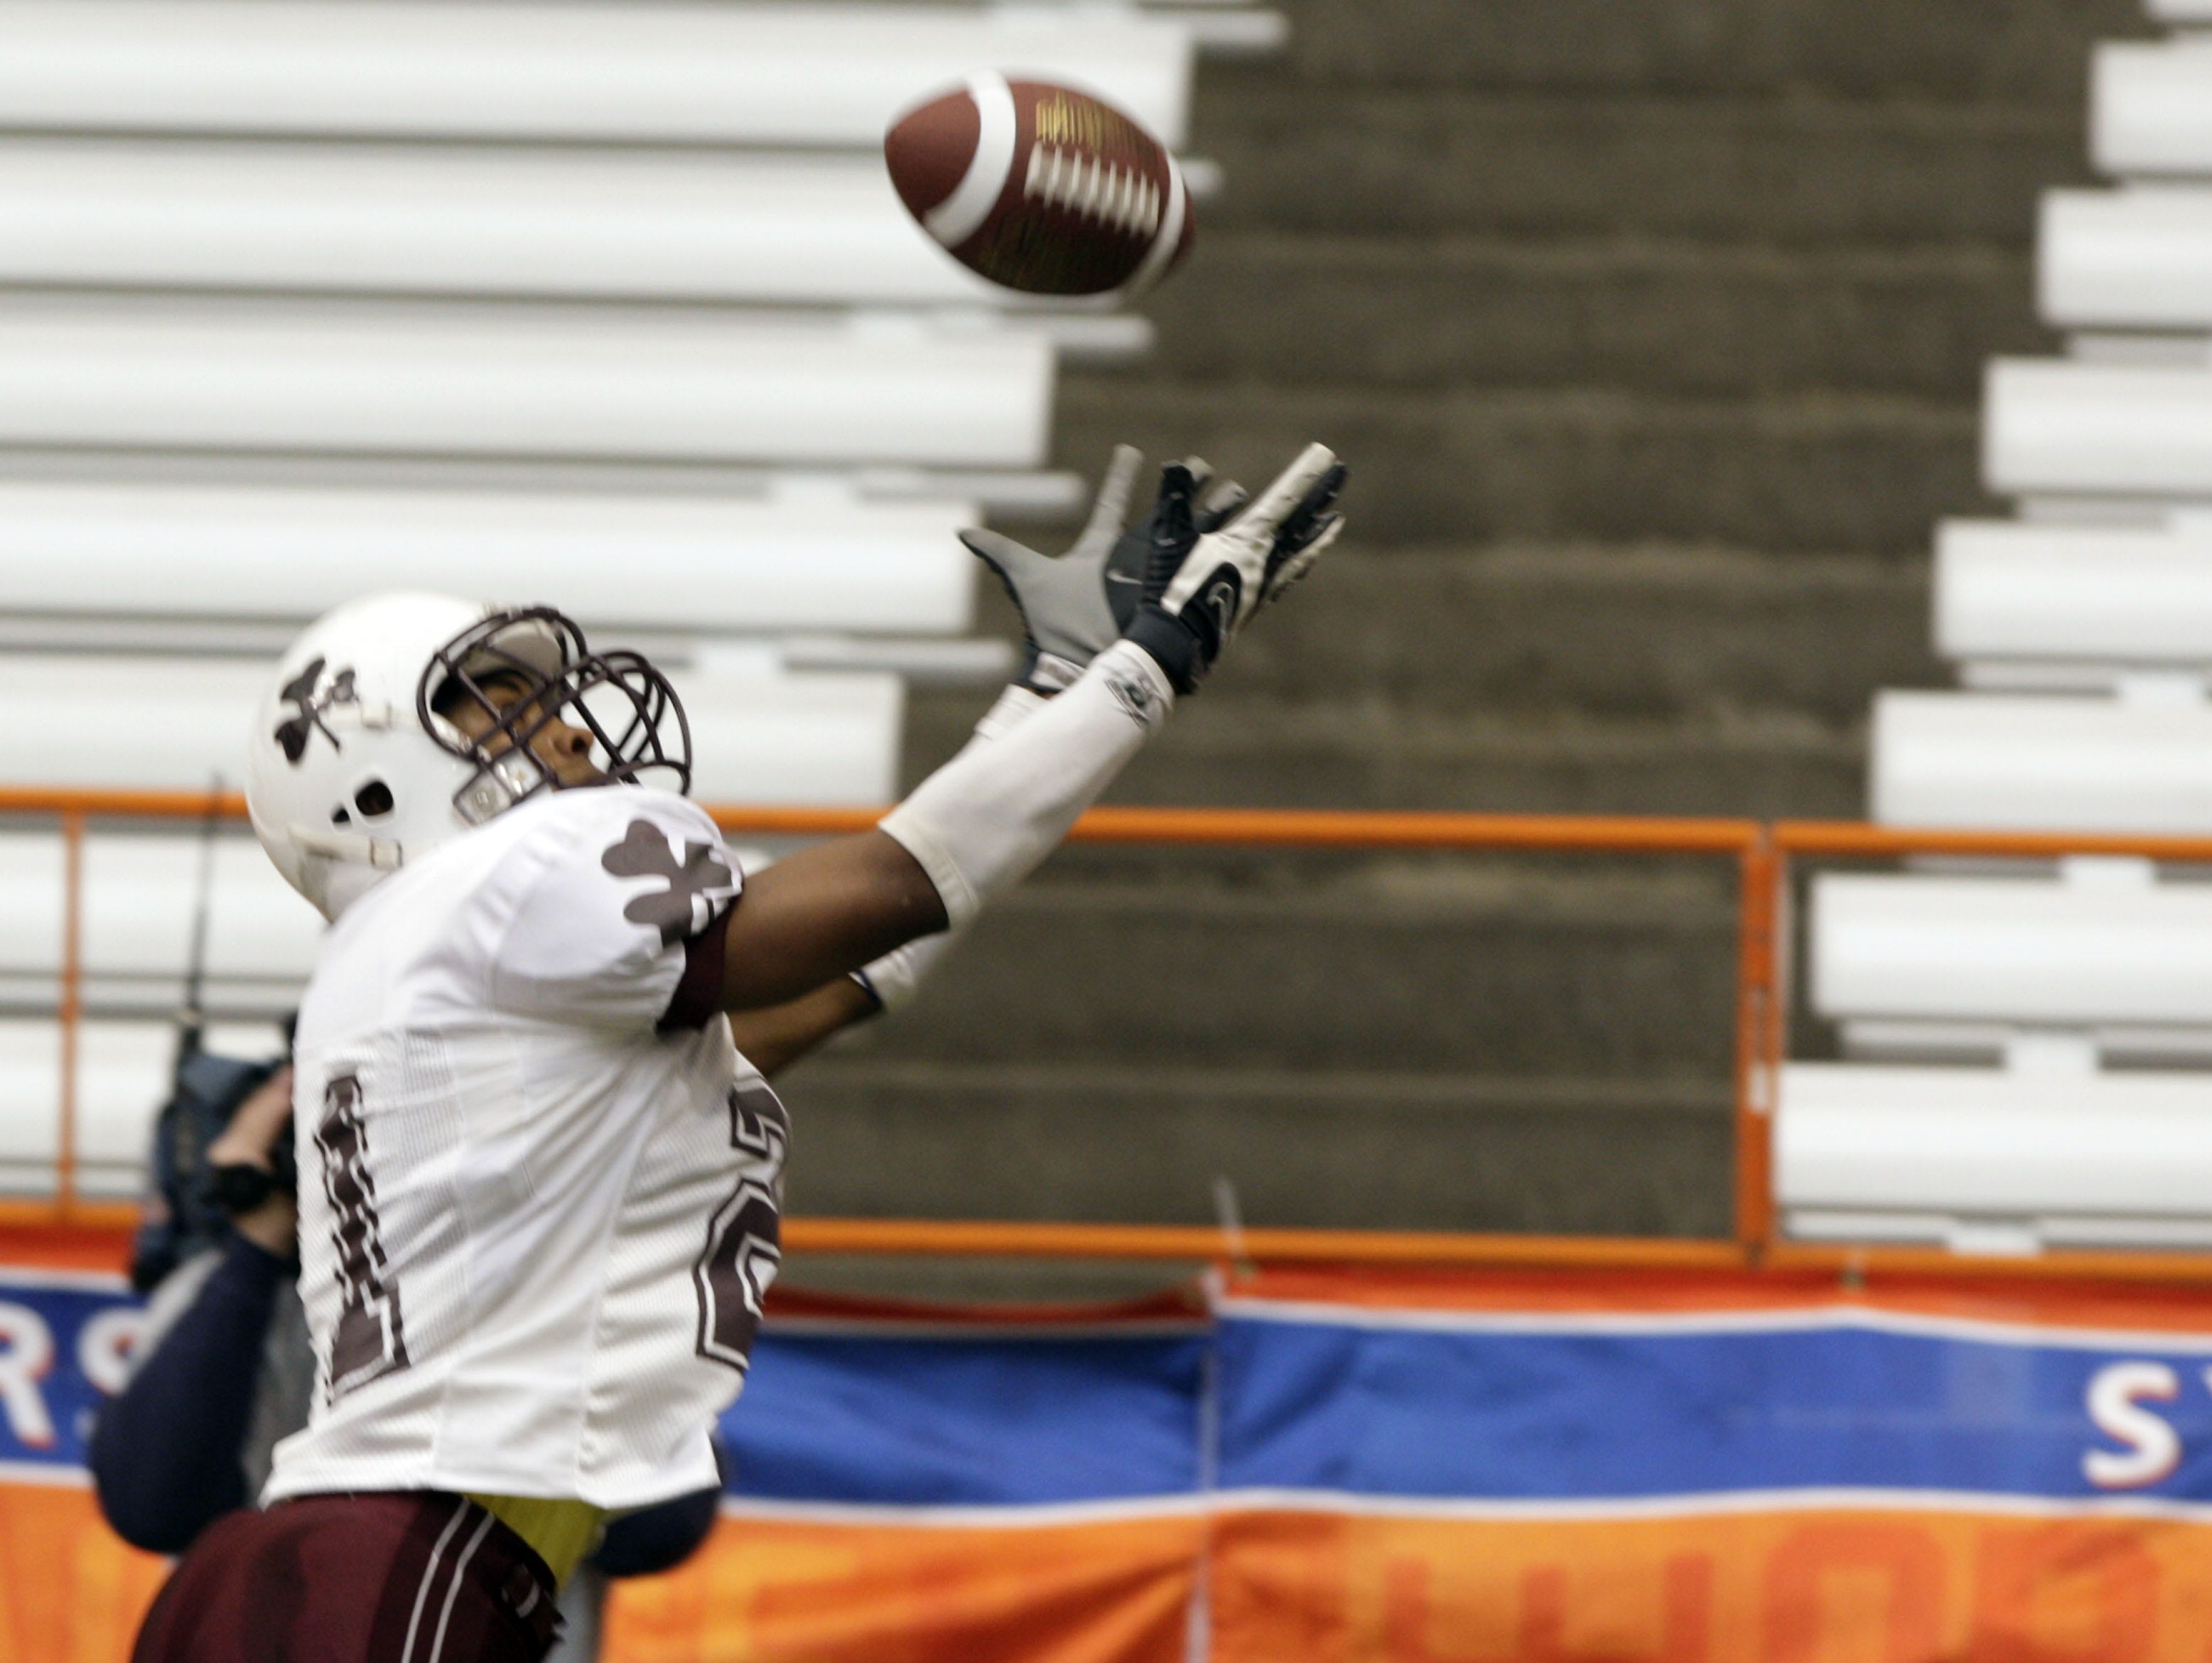 Aquinas' Dwayne Smith tries to reel in an interception during the 2007 Class A state title game between Aquinas and Lansingburgh at the Carrier Dome in Syracuse.